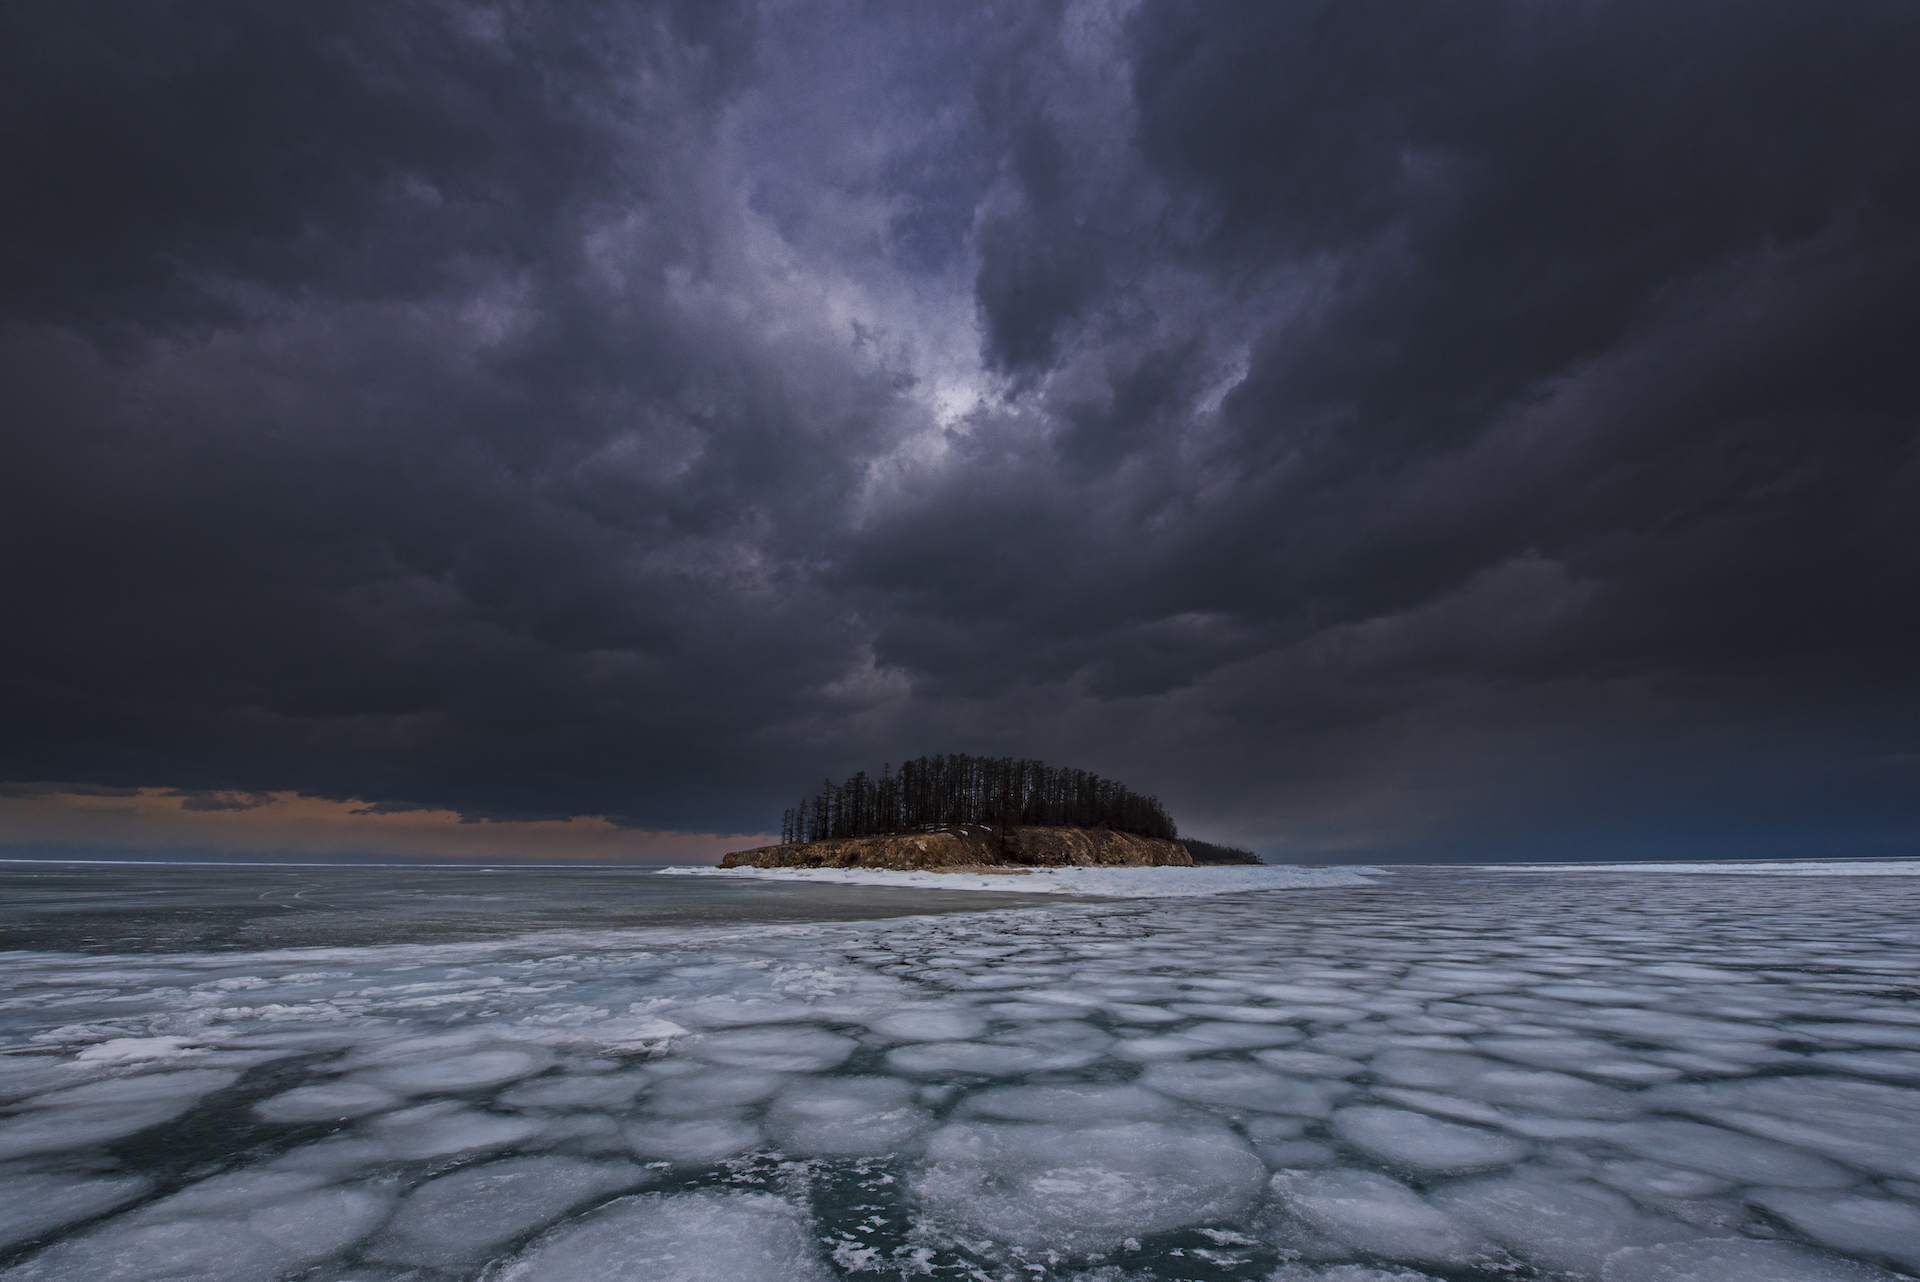 Baikal Lake covers an area of 31, 500 sq km, more than four times the size of Bengaluru city. In winter, the surface of the lake freezes, but due to the pristine nature of the water, the ice is often transparent. Baikal is a UNESCO World Heritage site and holds 20 percent of the planet's freshwater.